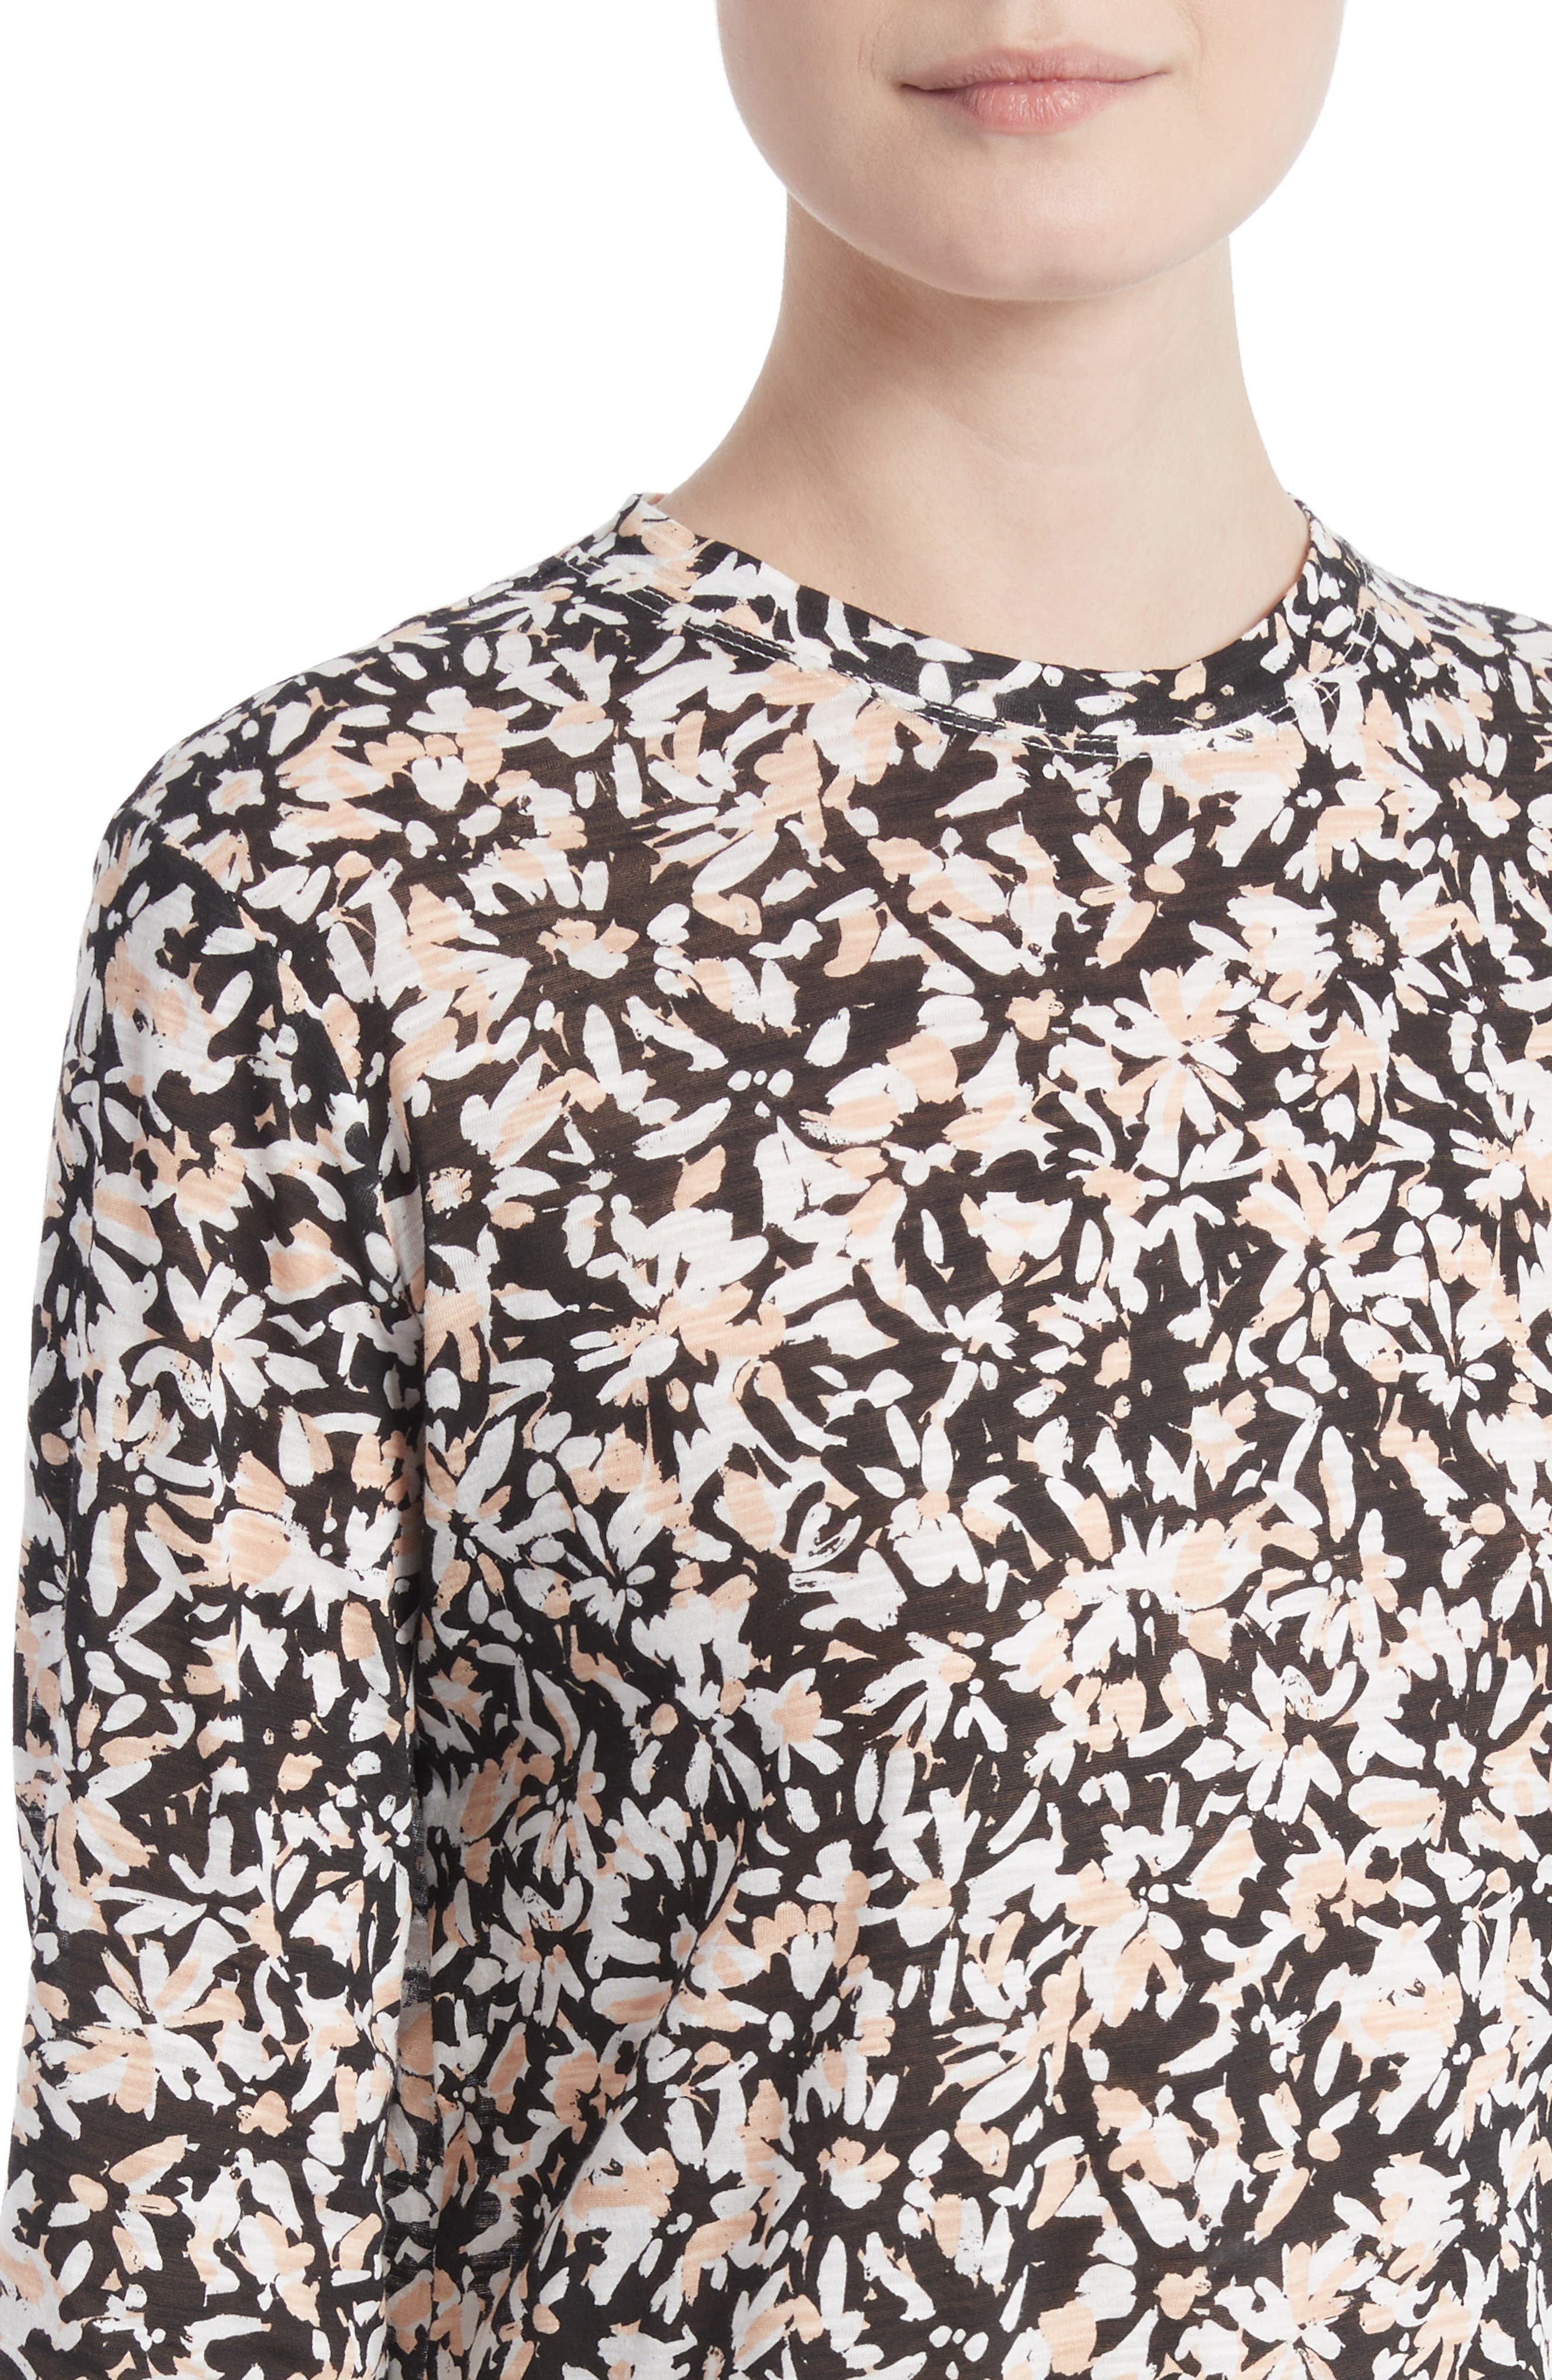 Print Tissue Jersey Tee,                             Alternate thumbnail 4, color,                             Nude/ Black Painted Floral